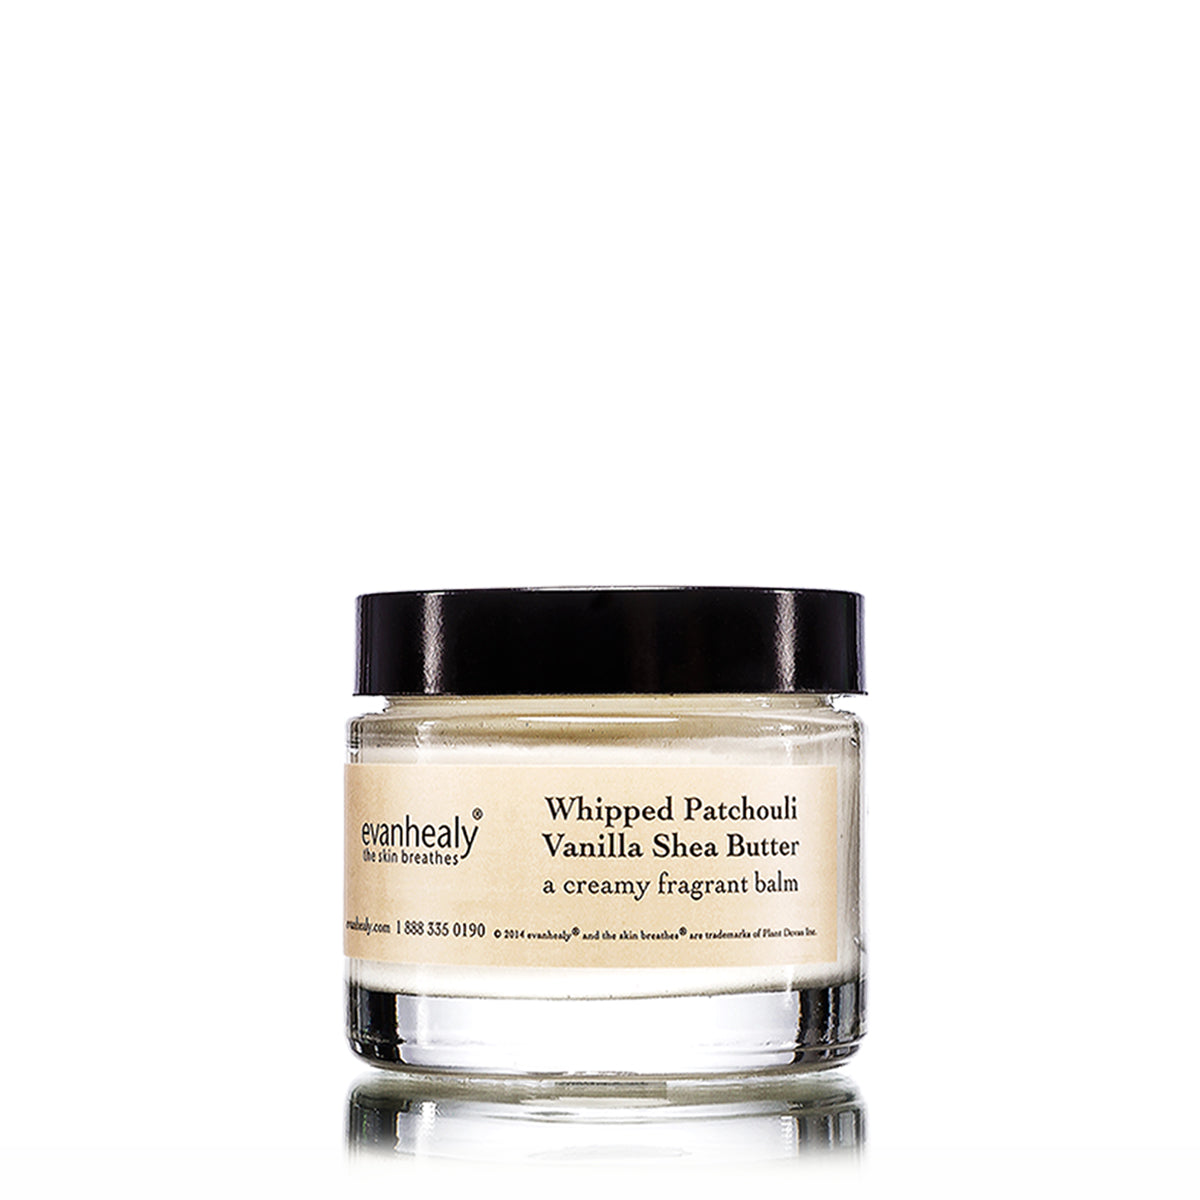 Whipped Patchouli Vanilla Shea Butter